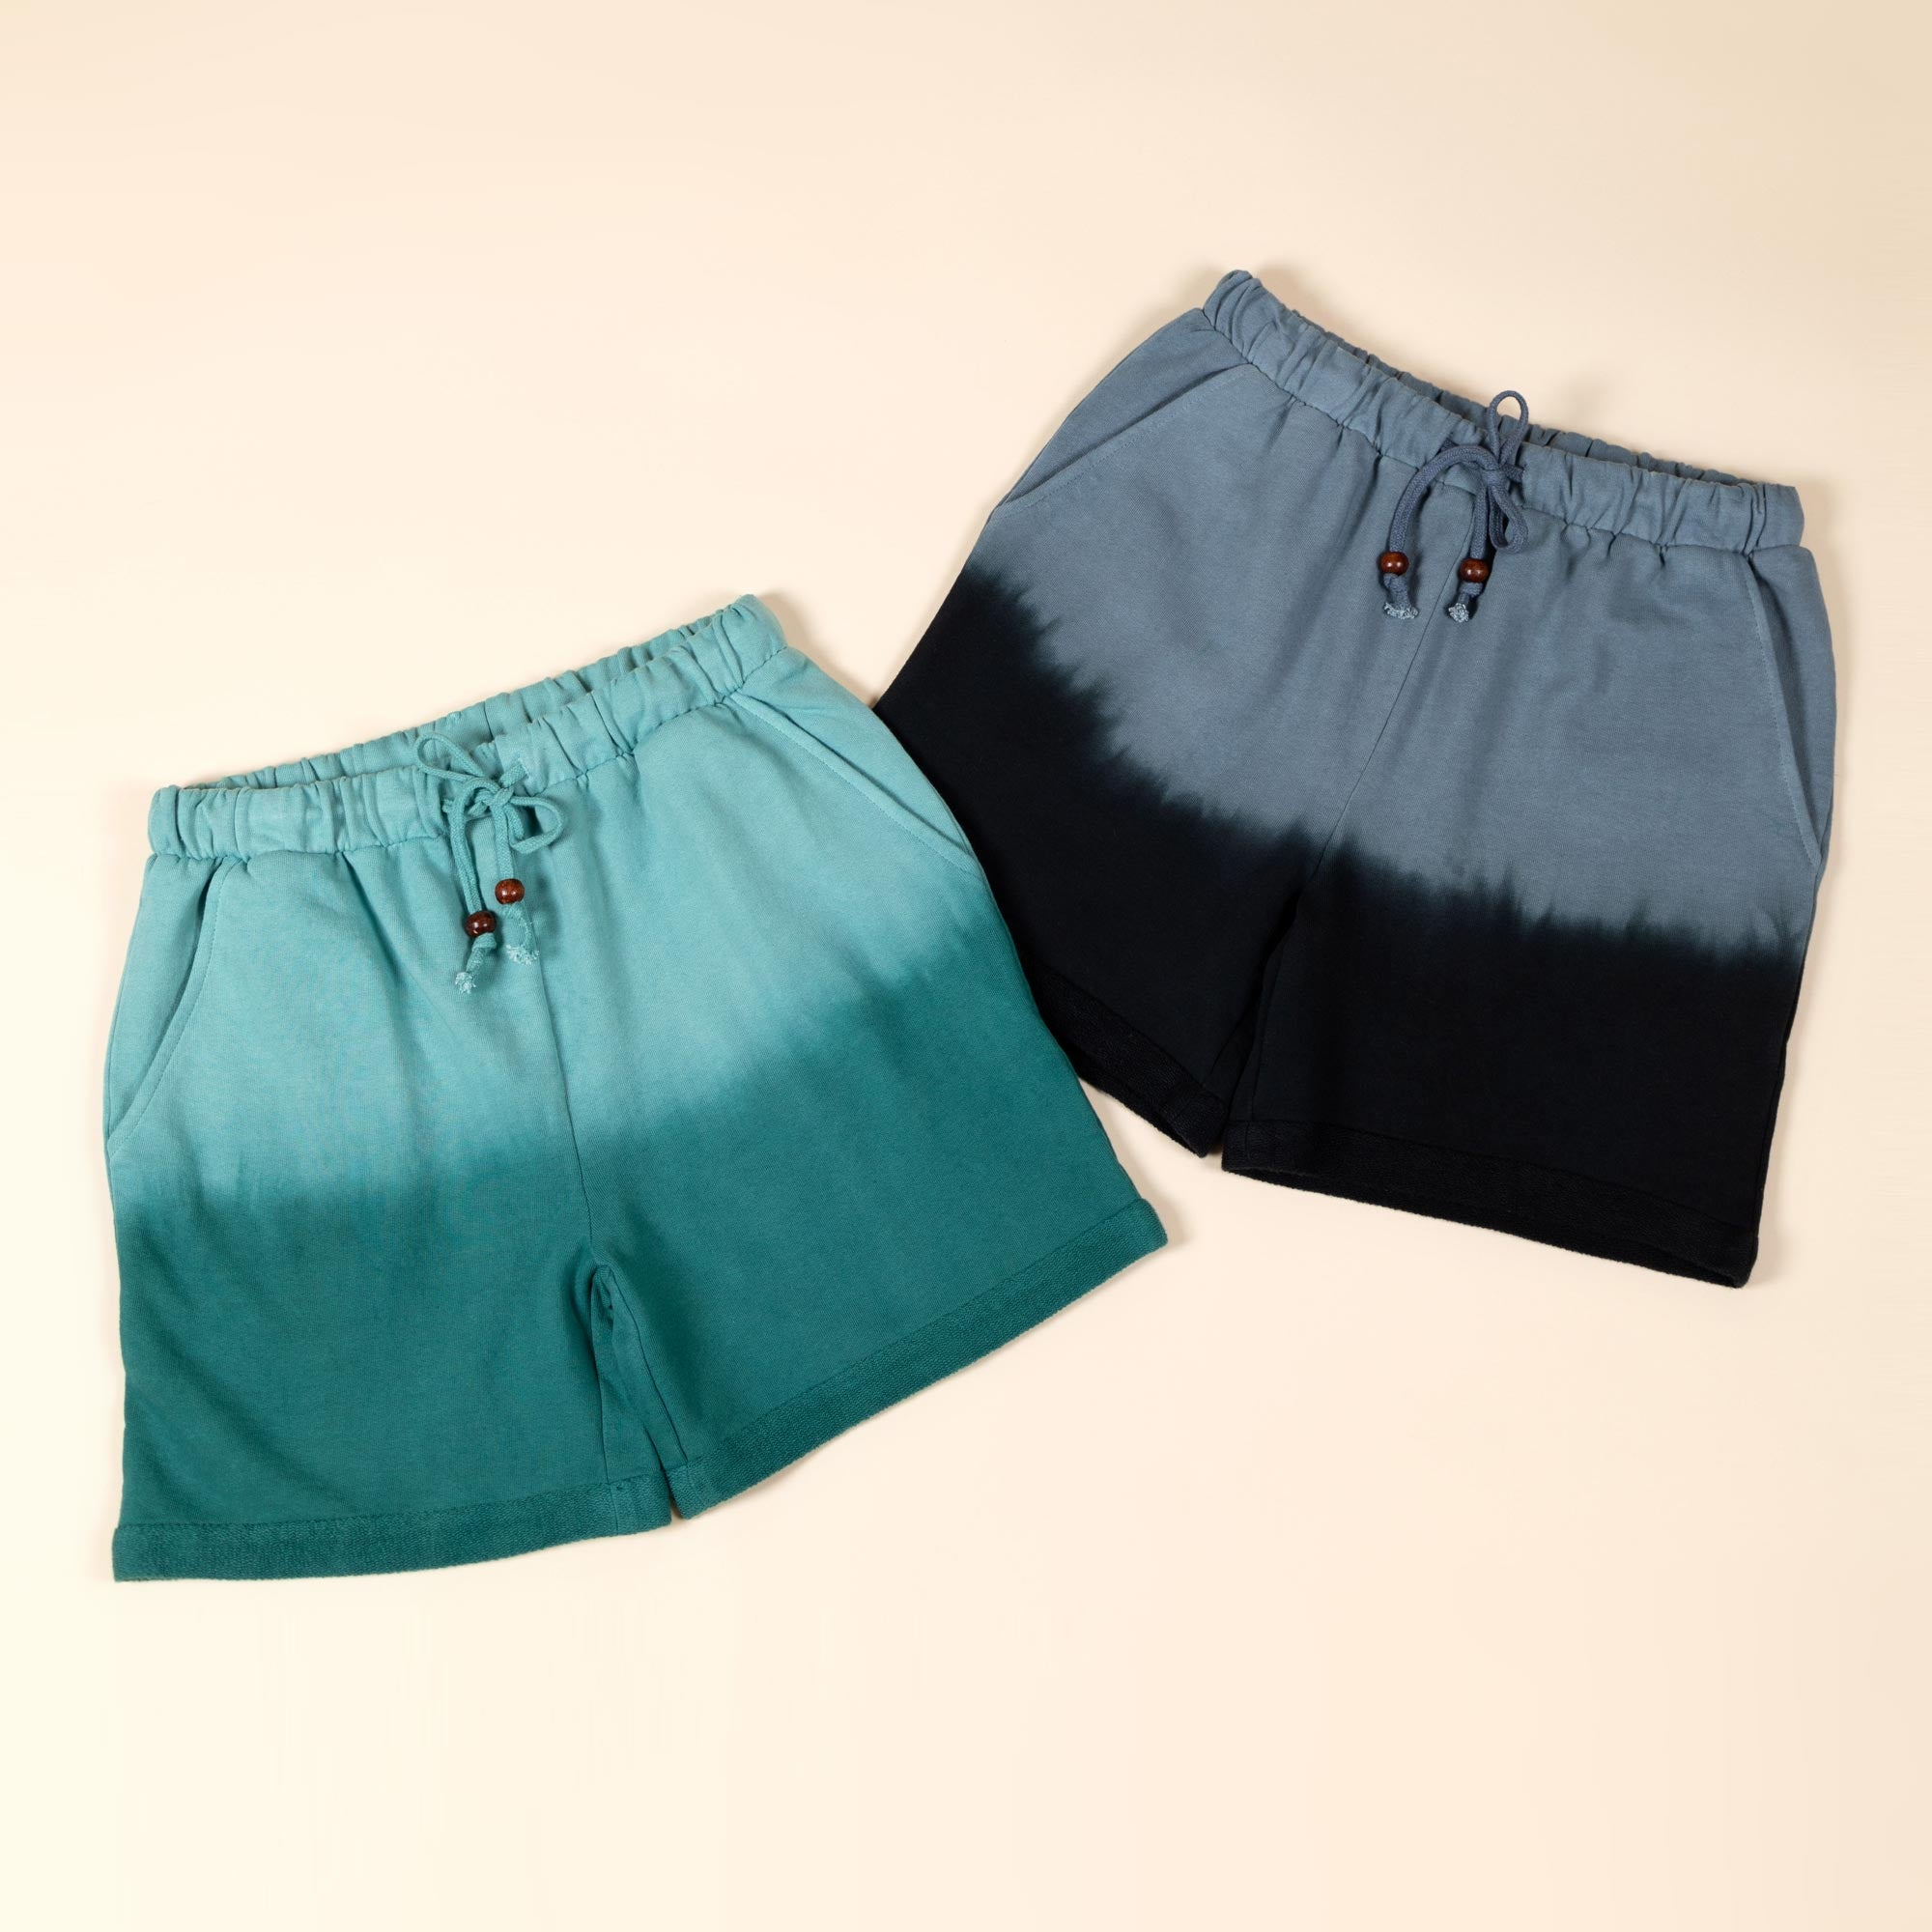 Three pairs of ombre dyed shorts lay on a clean background